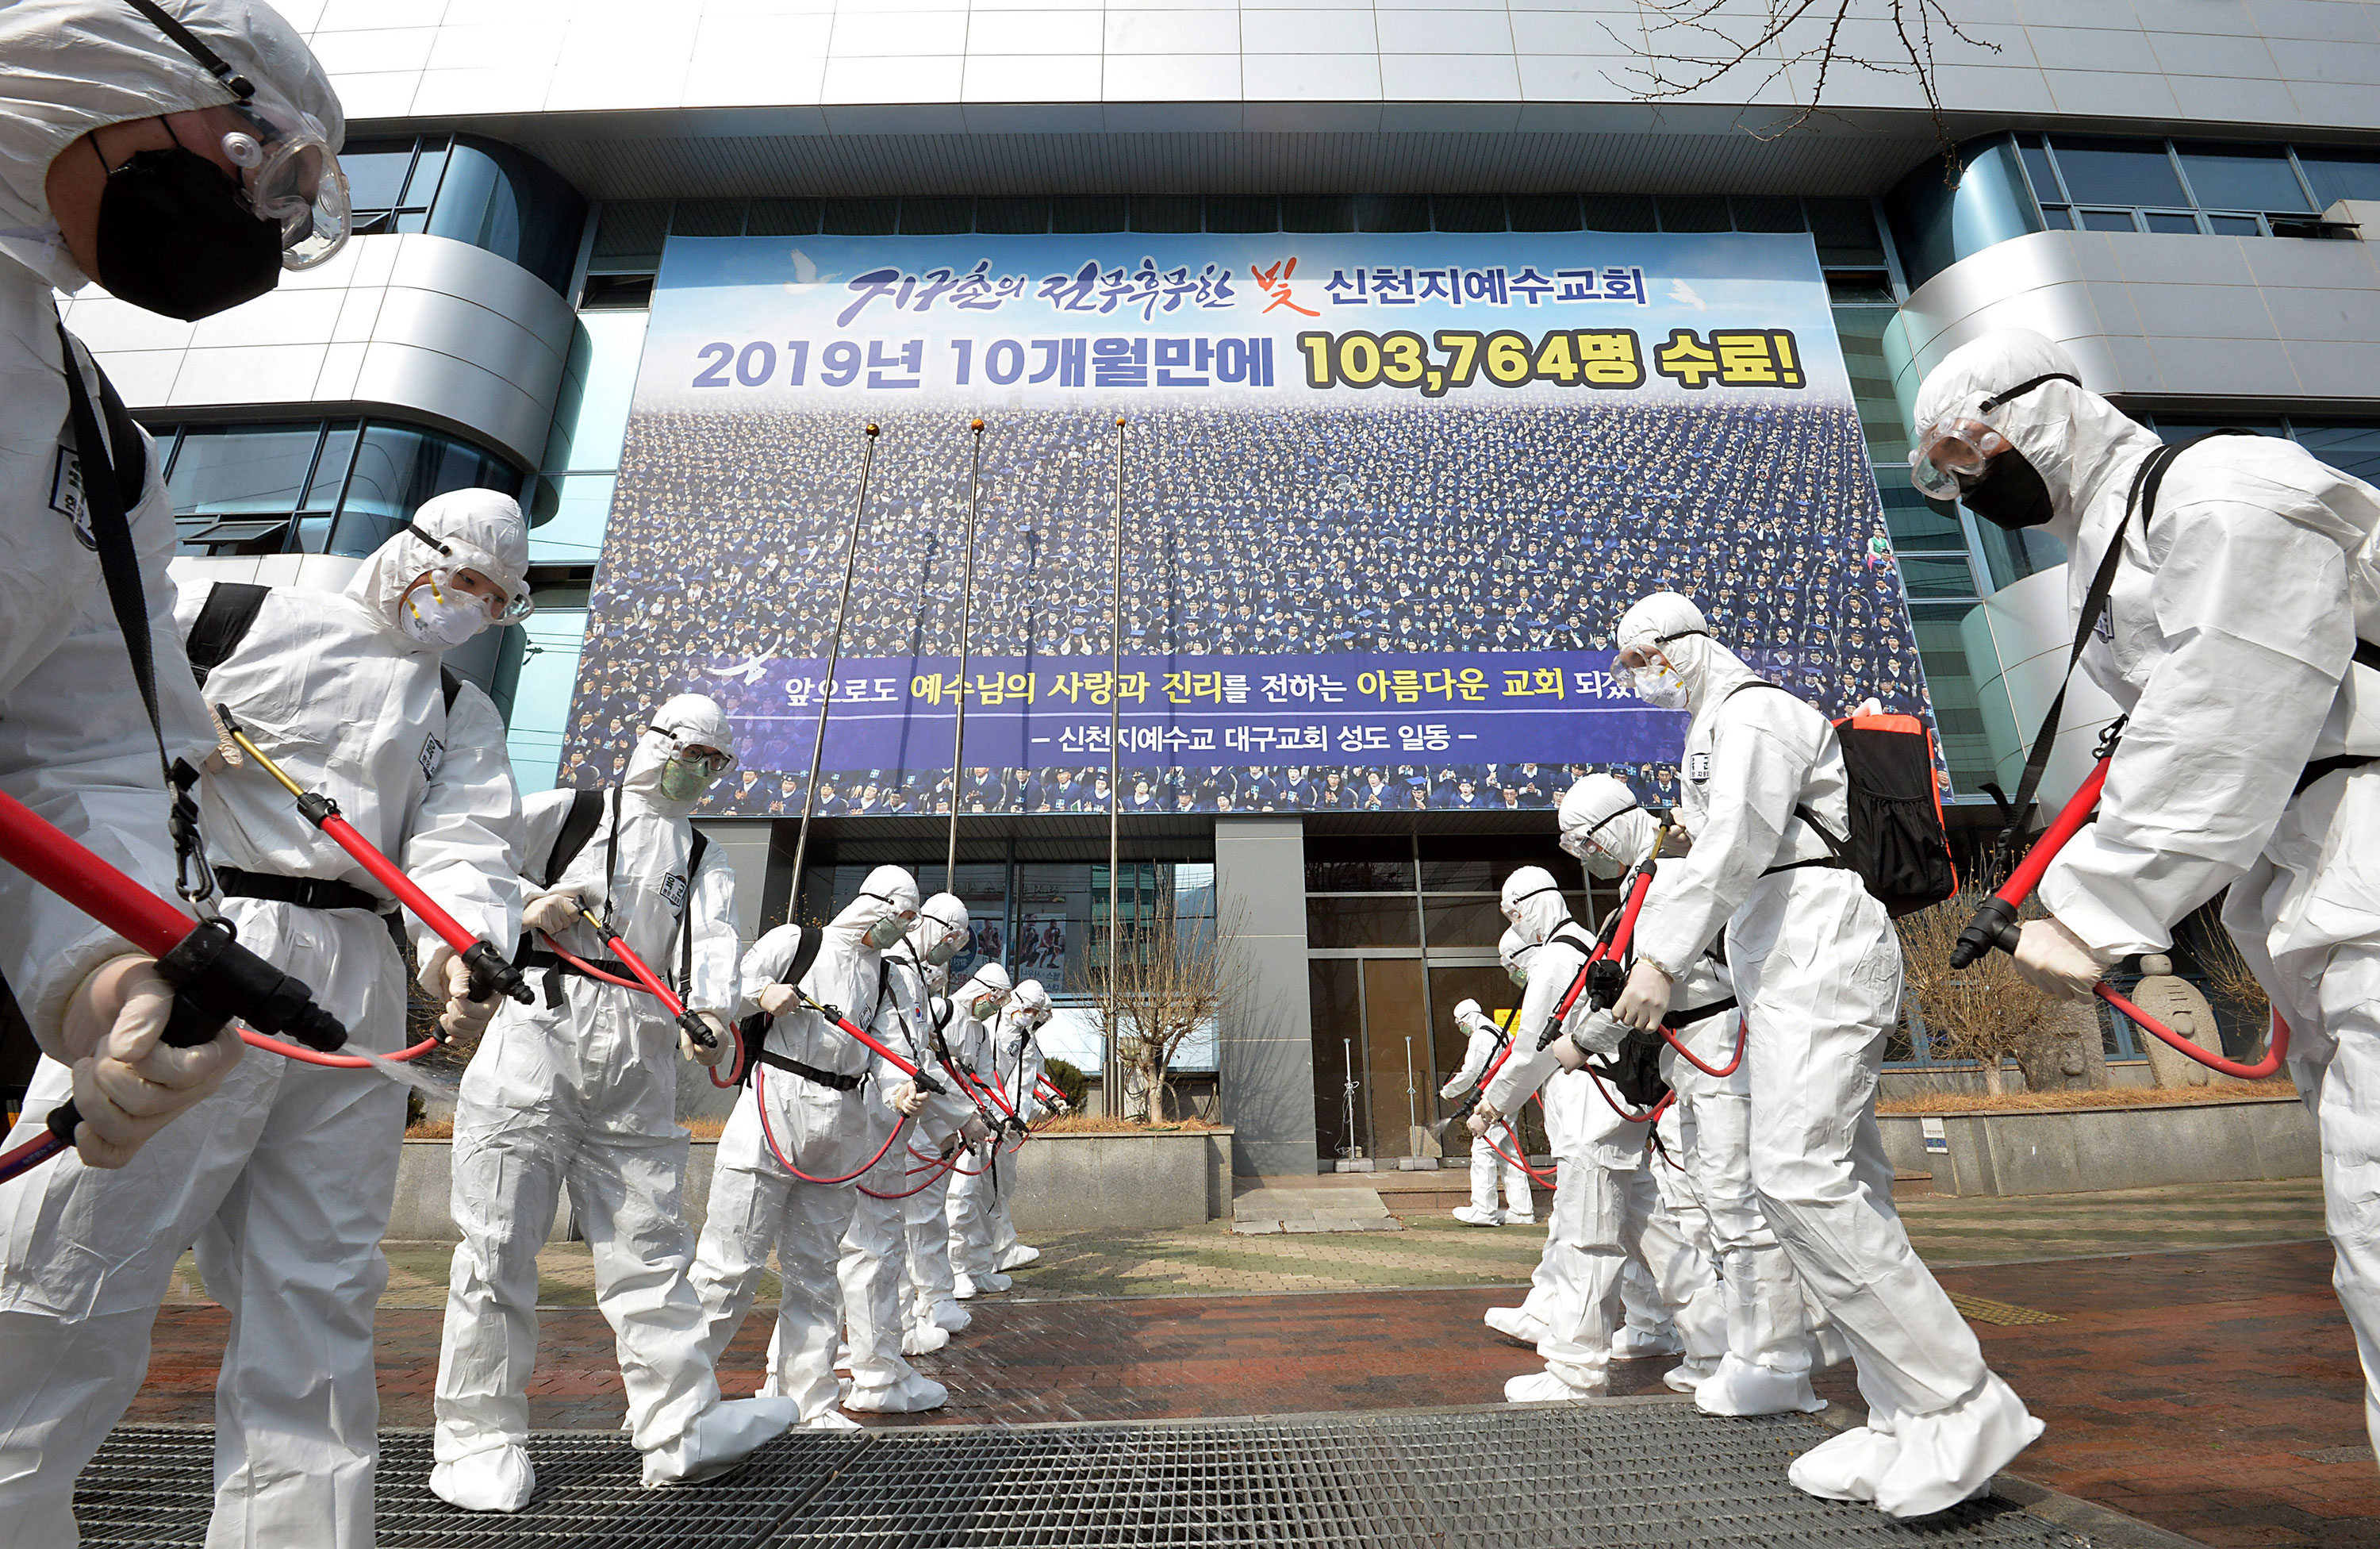 Workers spray disinfectant in front of a branch of the Shincheonji Church of Jesus in Daegu, South Korea, on March 1.